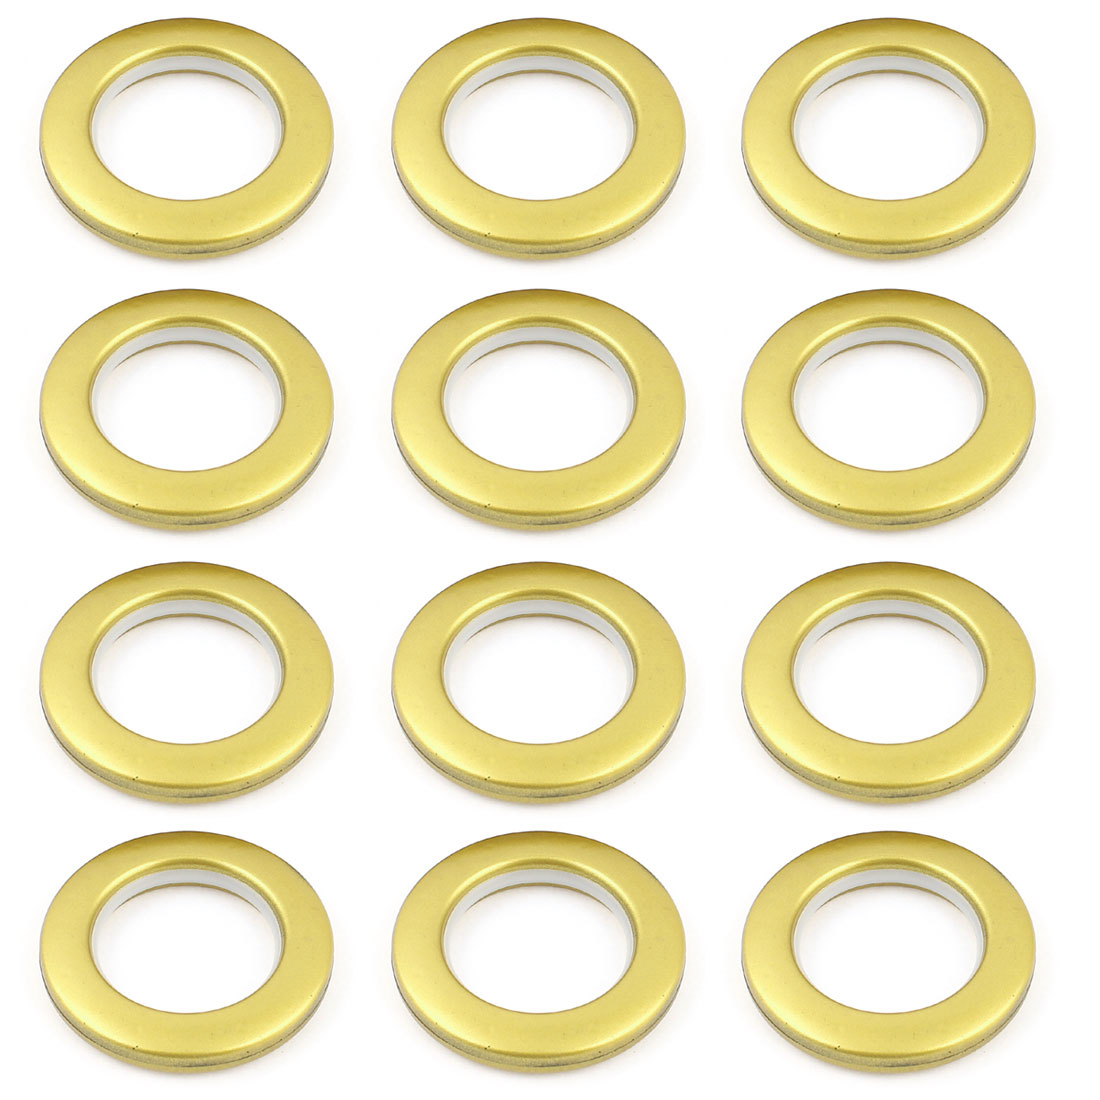 Home Window Curtain Rings Gold Tone 42mm Inside Diameter 12 Pcs